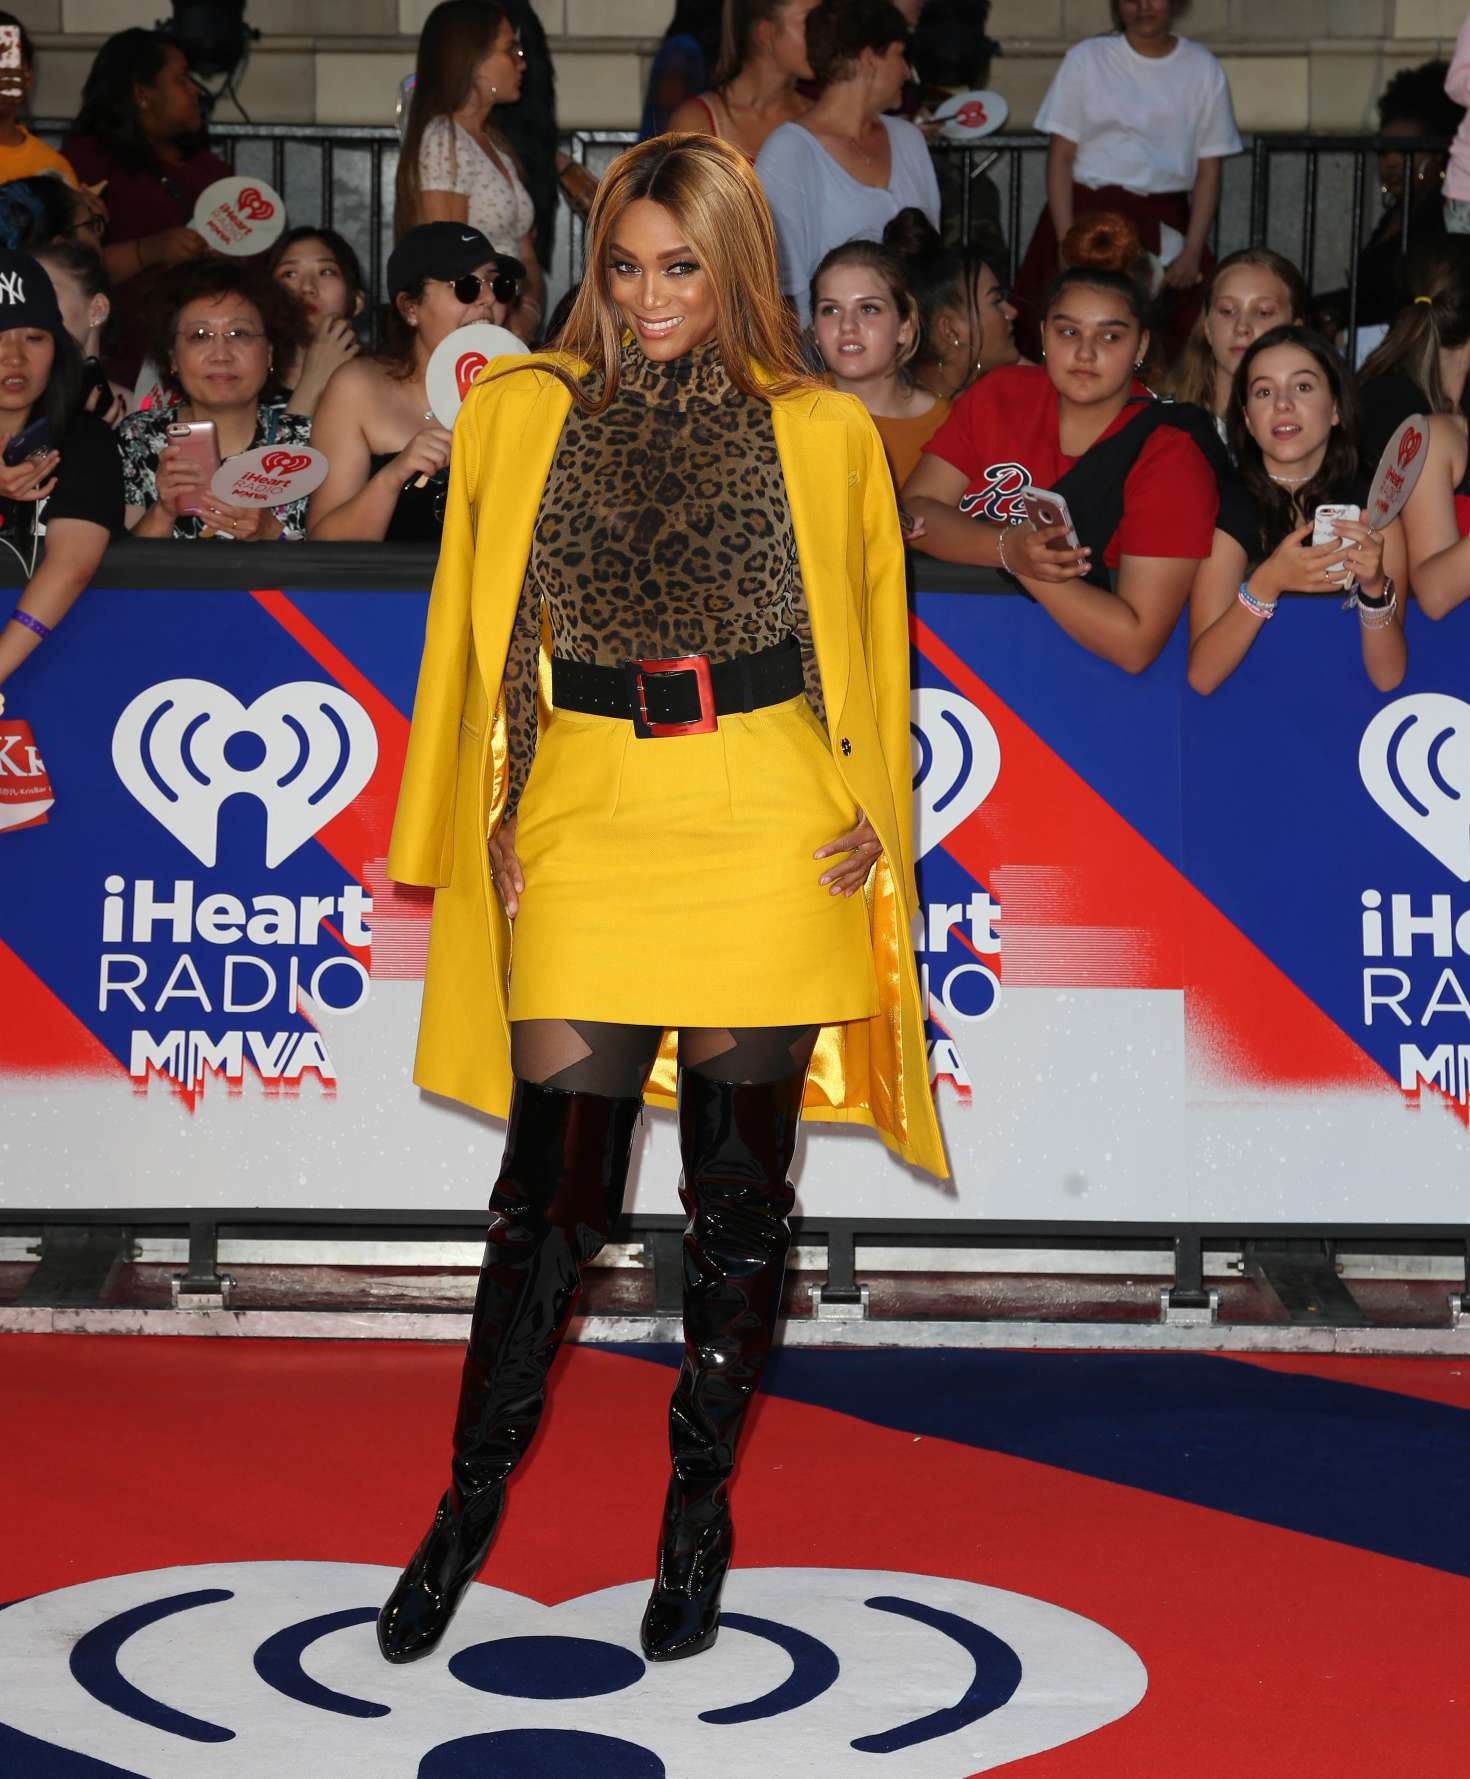 Tyra Banks 2018: 2018 IHeartRadio Much Music Video Awards In